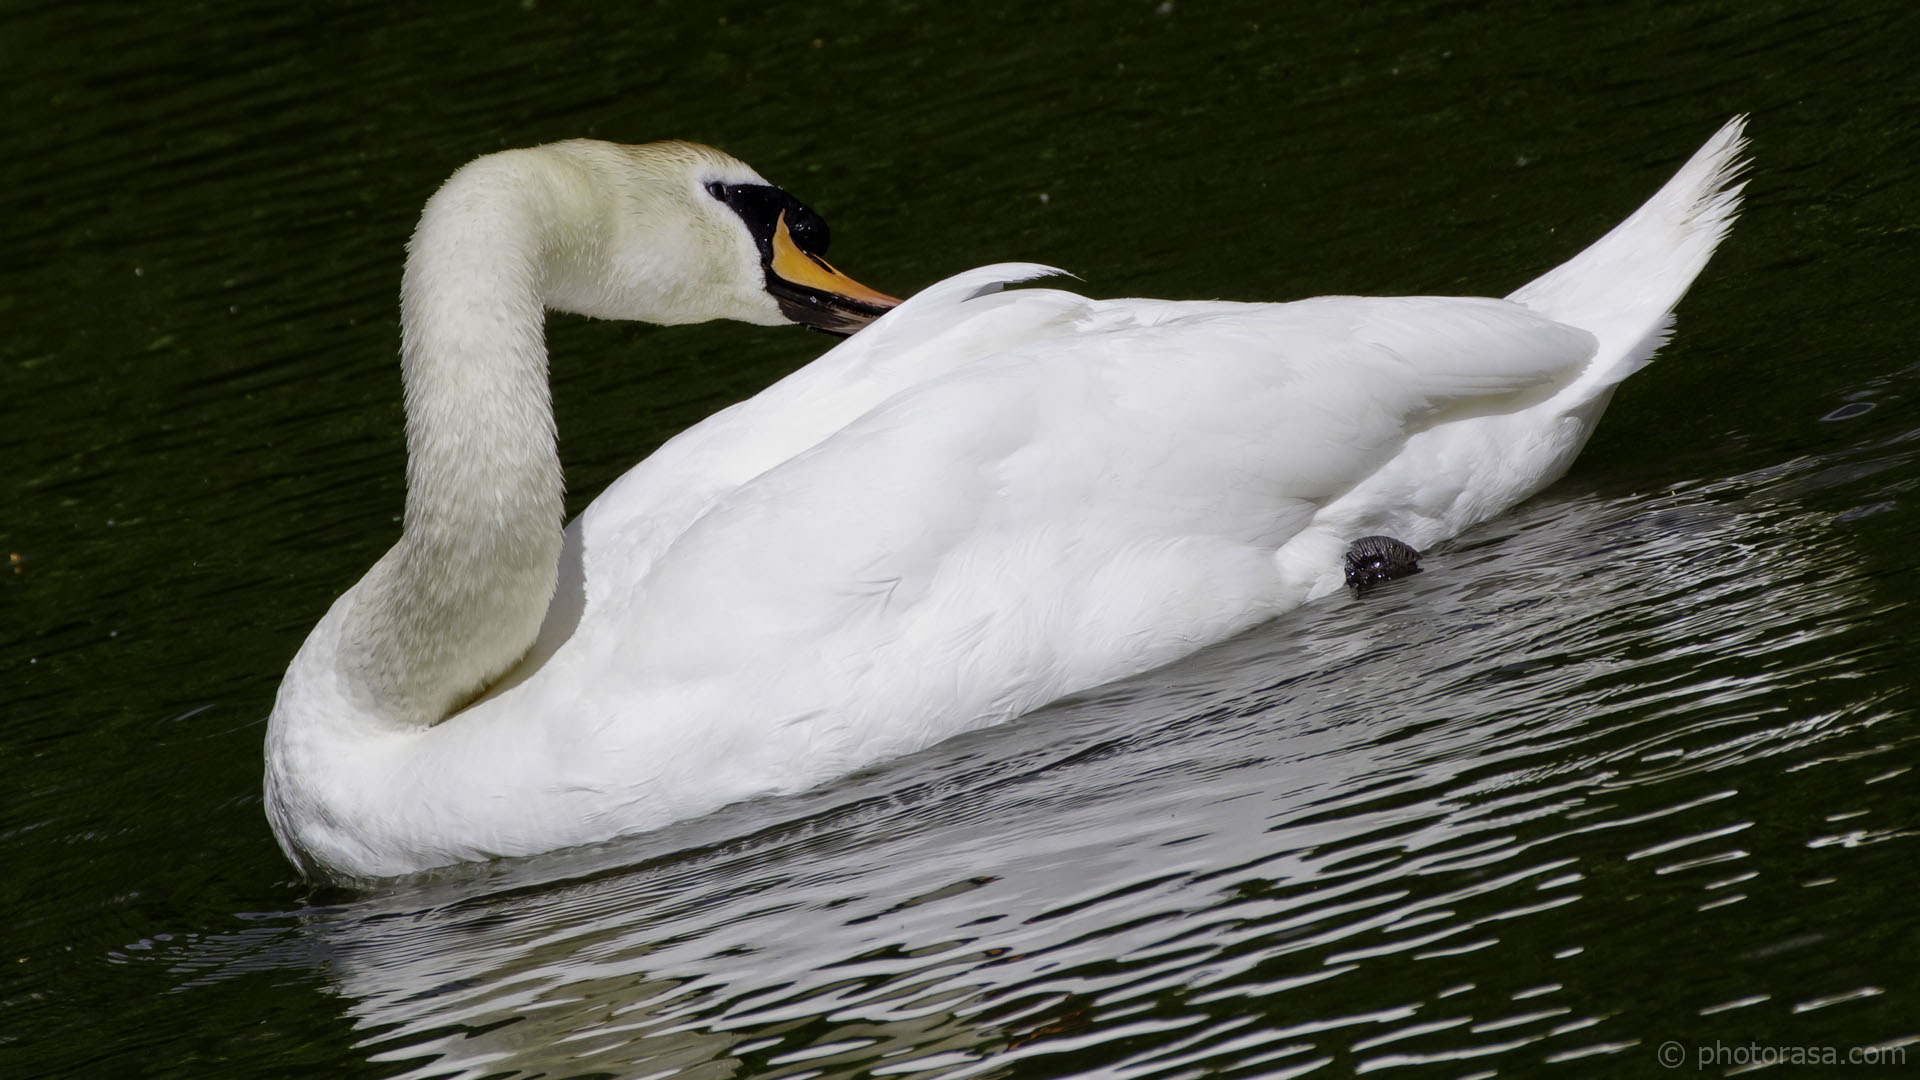 http://photorasa.com/art-swans/swan-neck-three-point-turn/